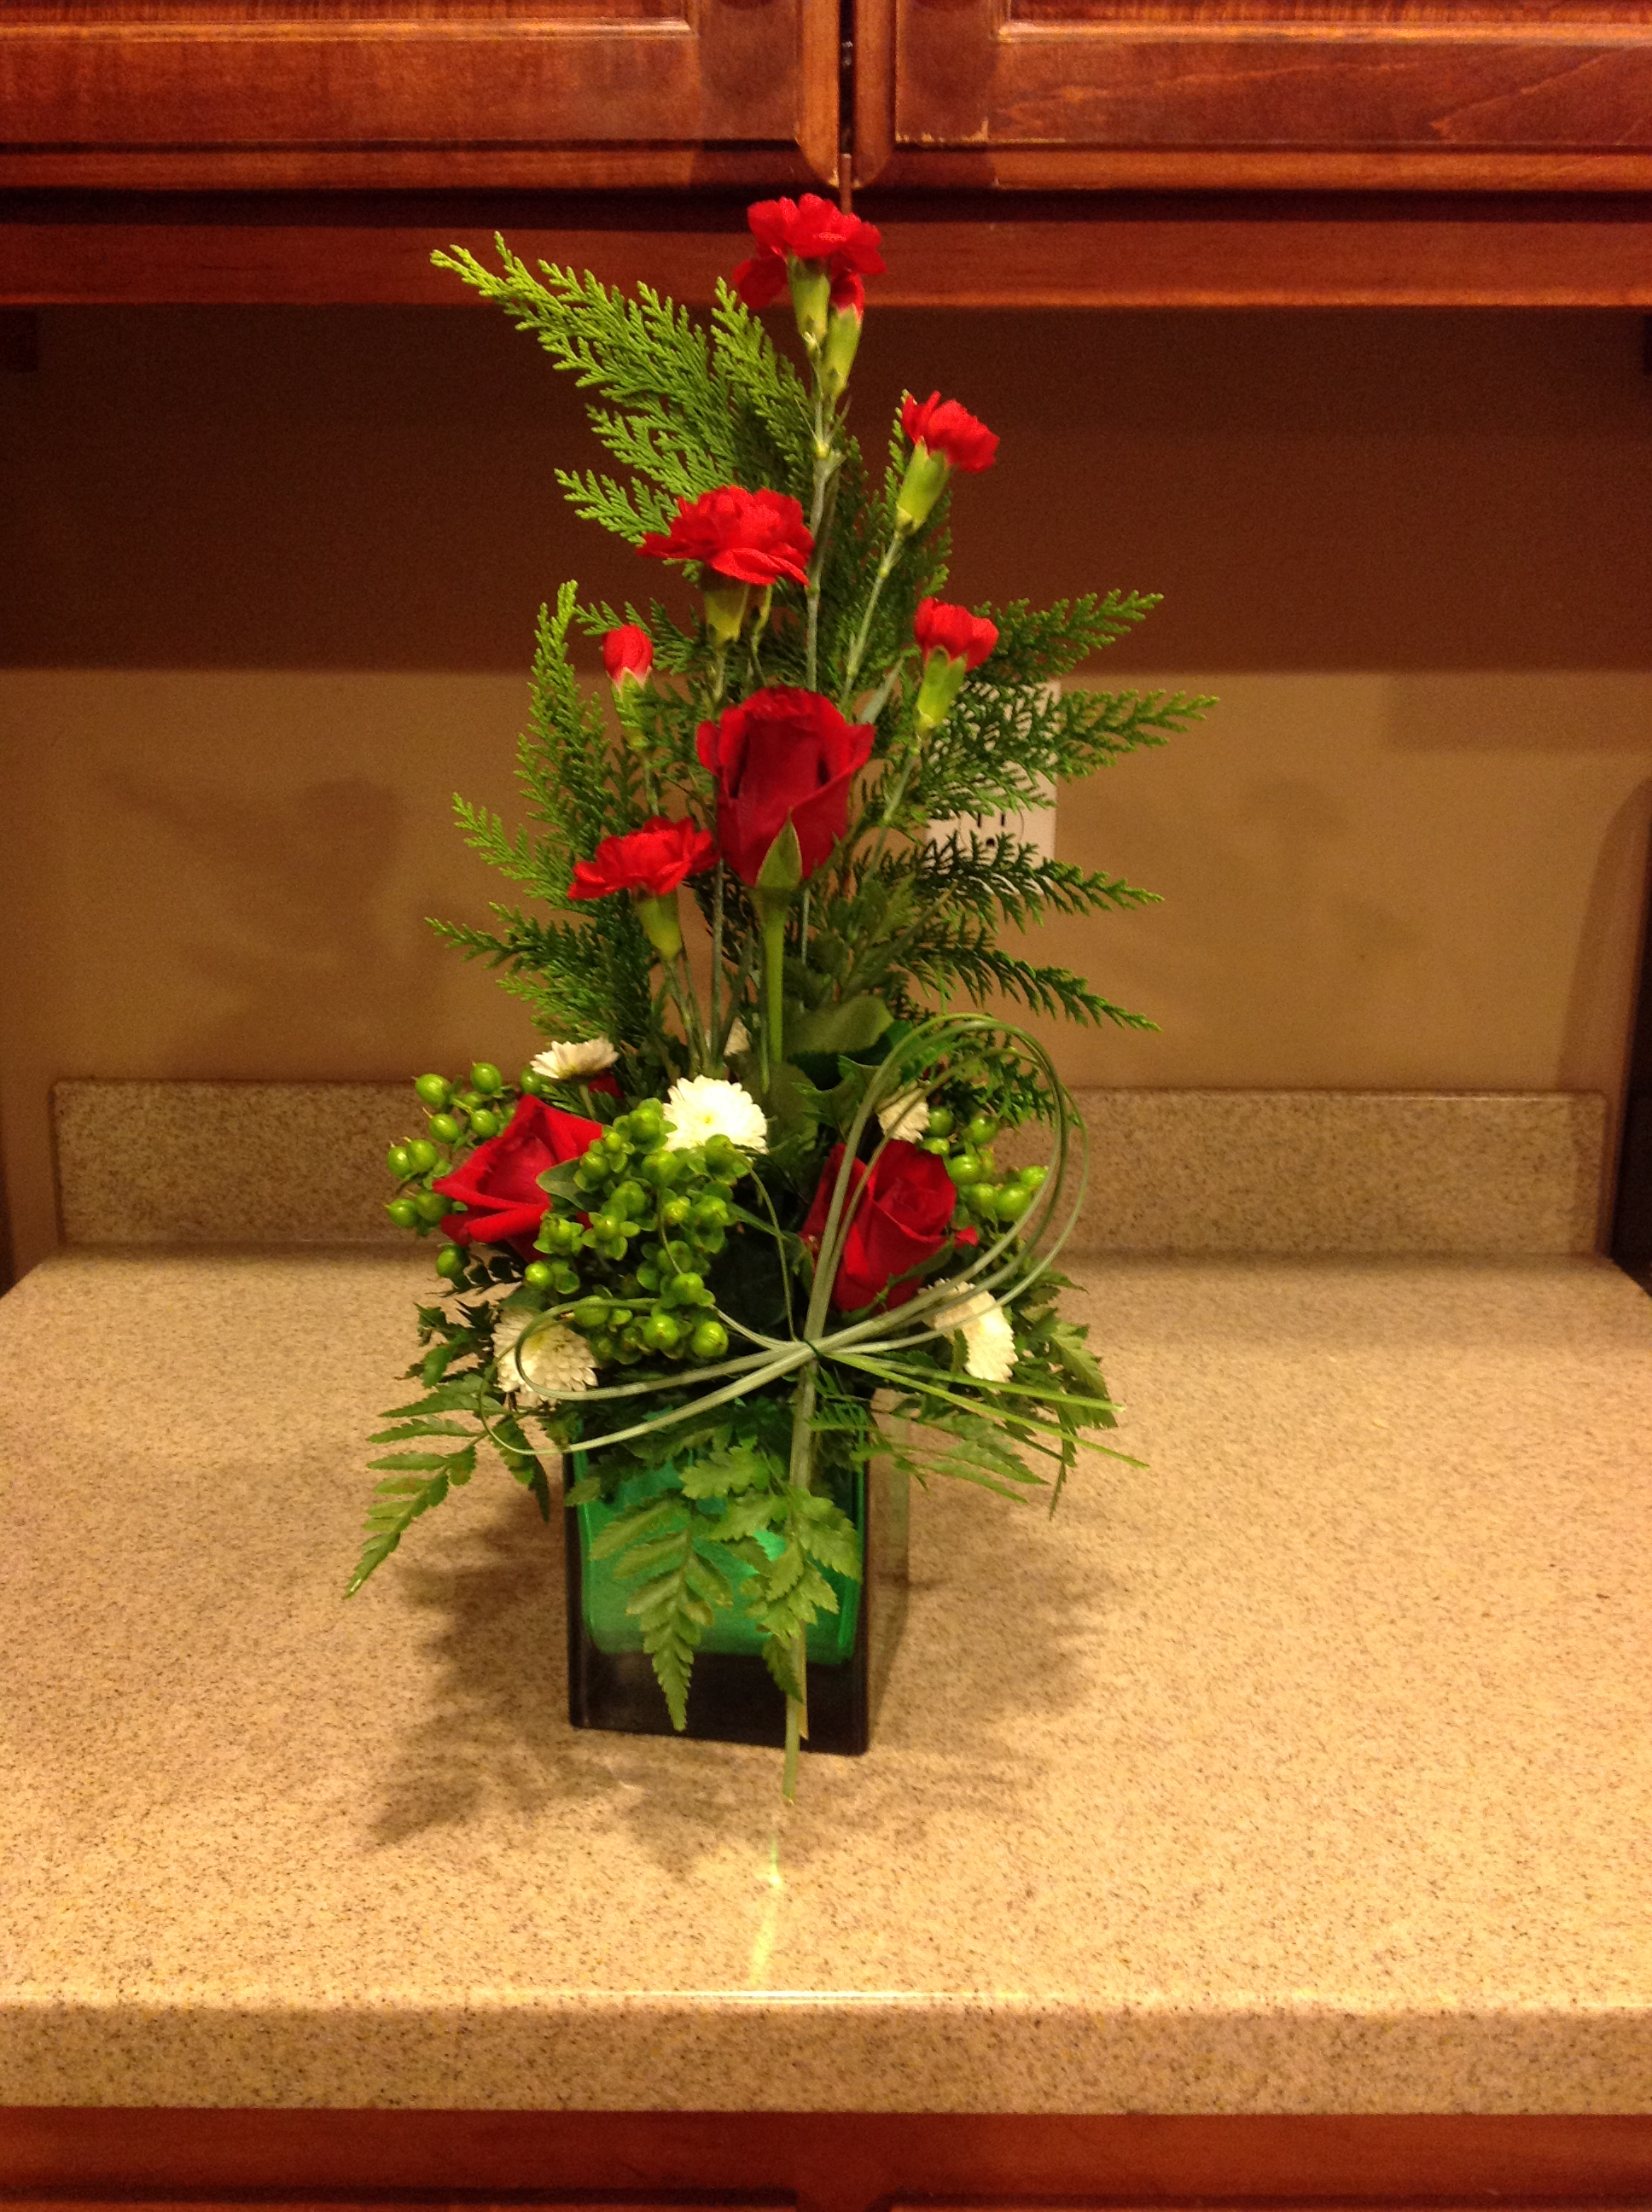 Christmas Flower Arrangements.How To Make A Christmas Flower Arrangement 13 Steps With